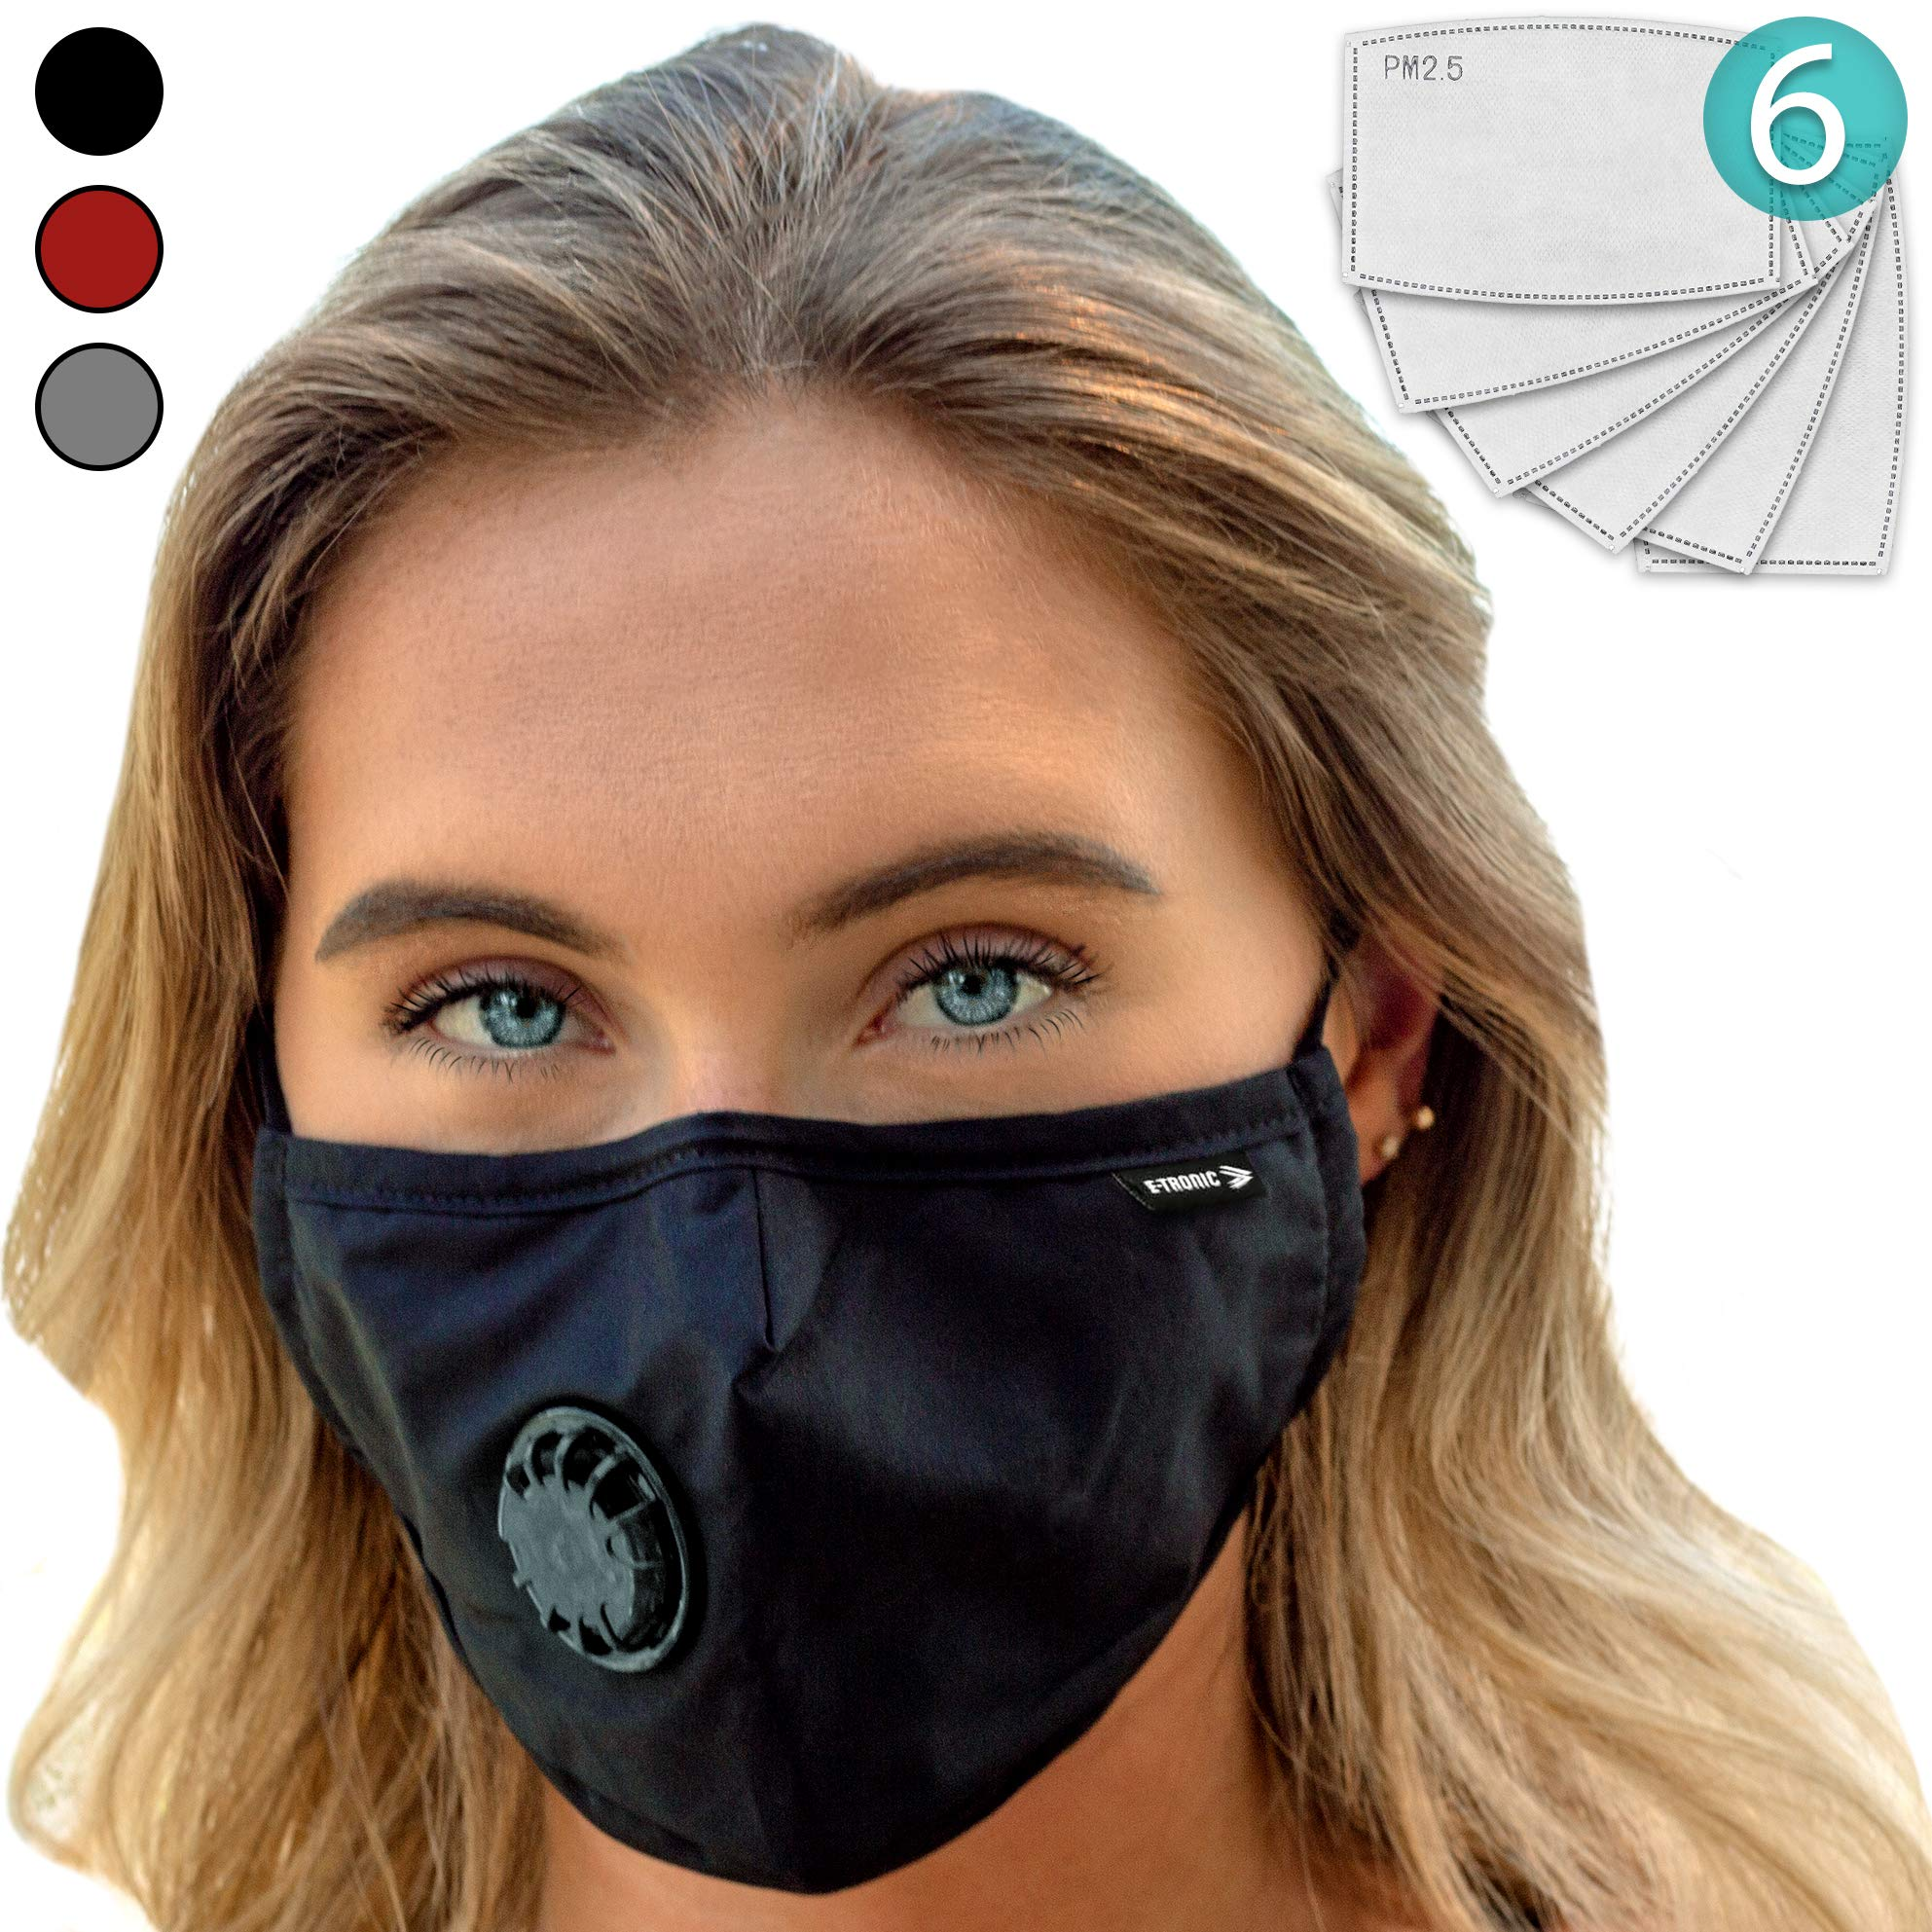 Face Mask: Best Air Pollution Universal FIT Dust Masks + 6 N99 Filter. Carbon Respirator & DustProof Safety Cover Mouth from Gas Exhaust Smoke, Pollen, Paint. Cycling Running for Women Men Kids (BLK) by E Tronic Edge